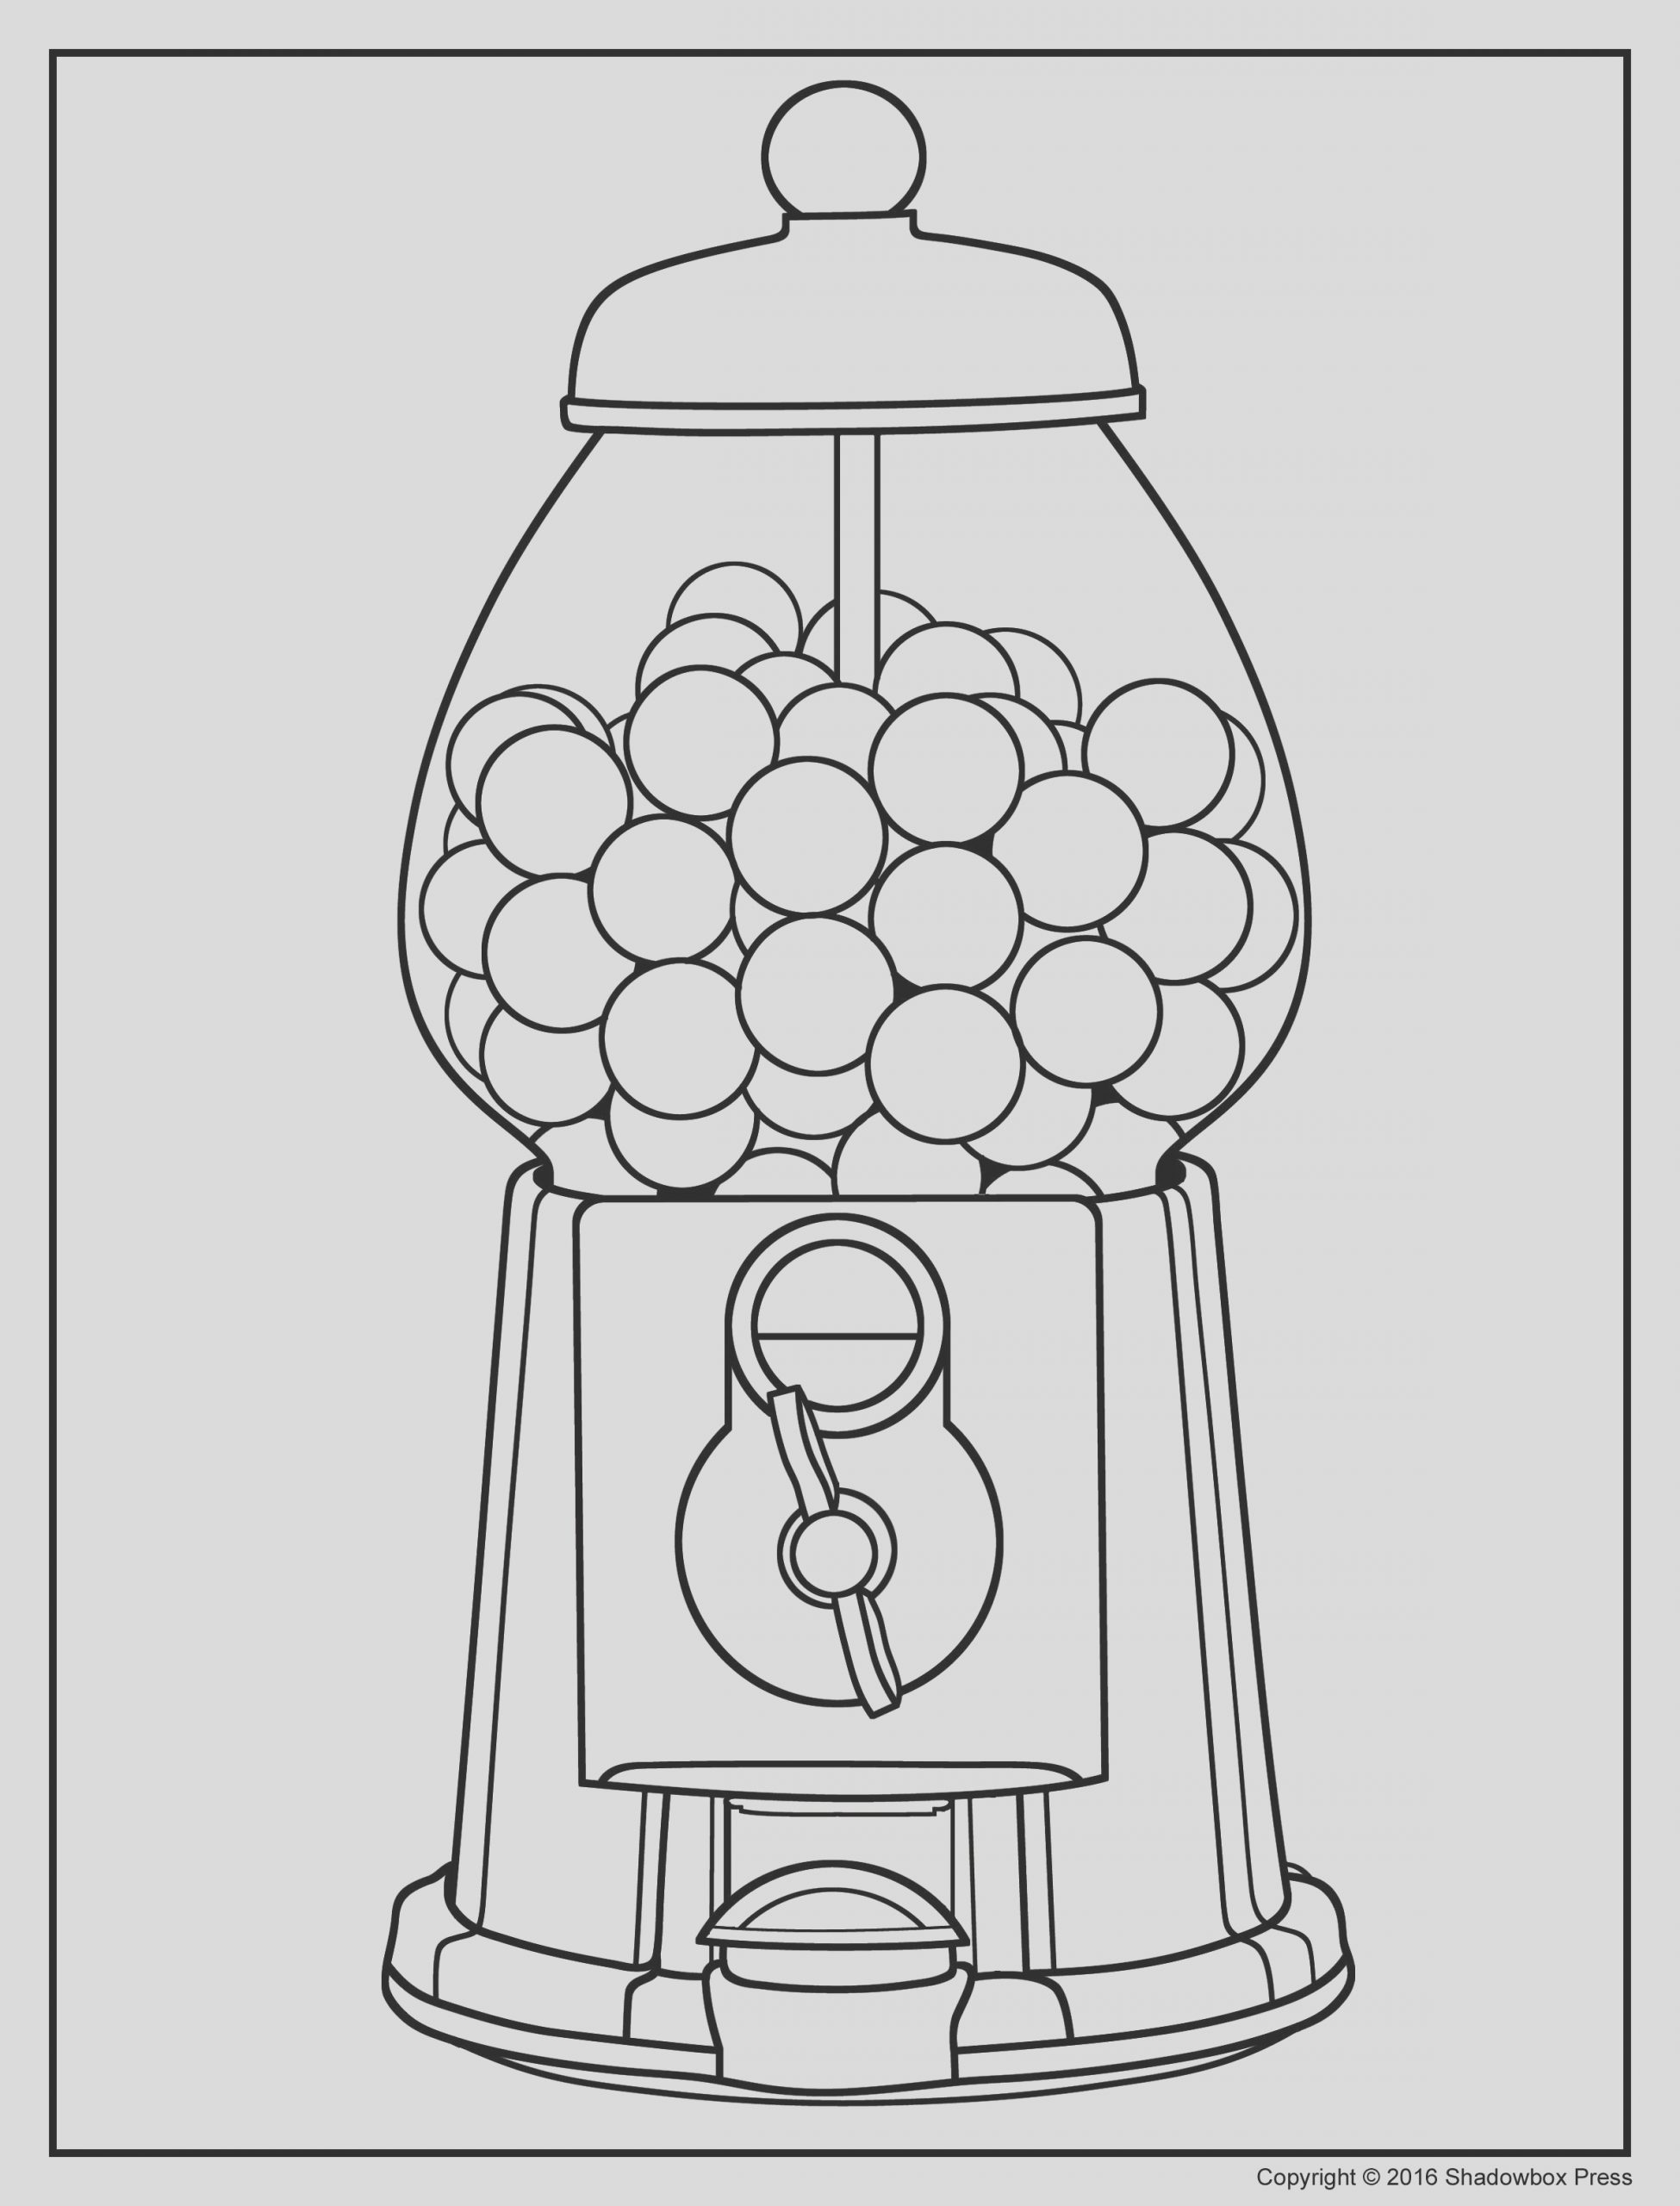 free able coloring pages for adults